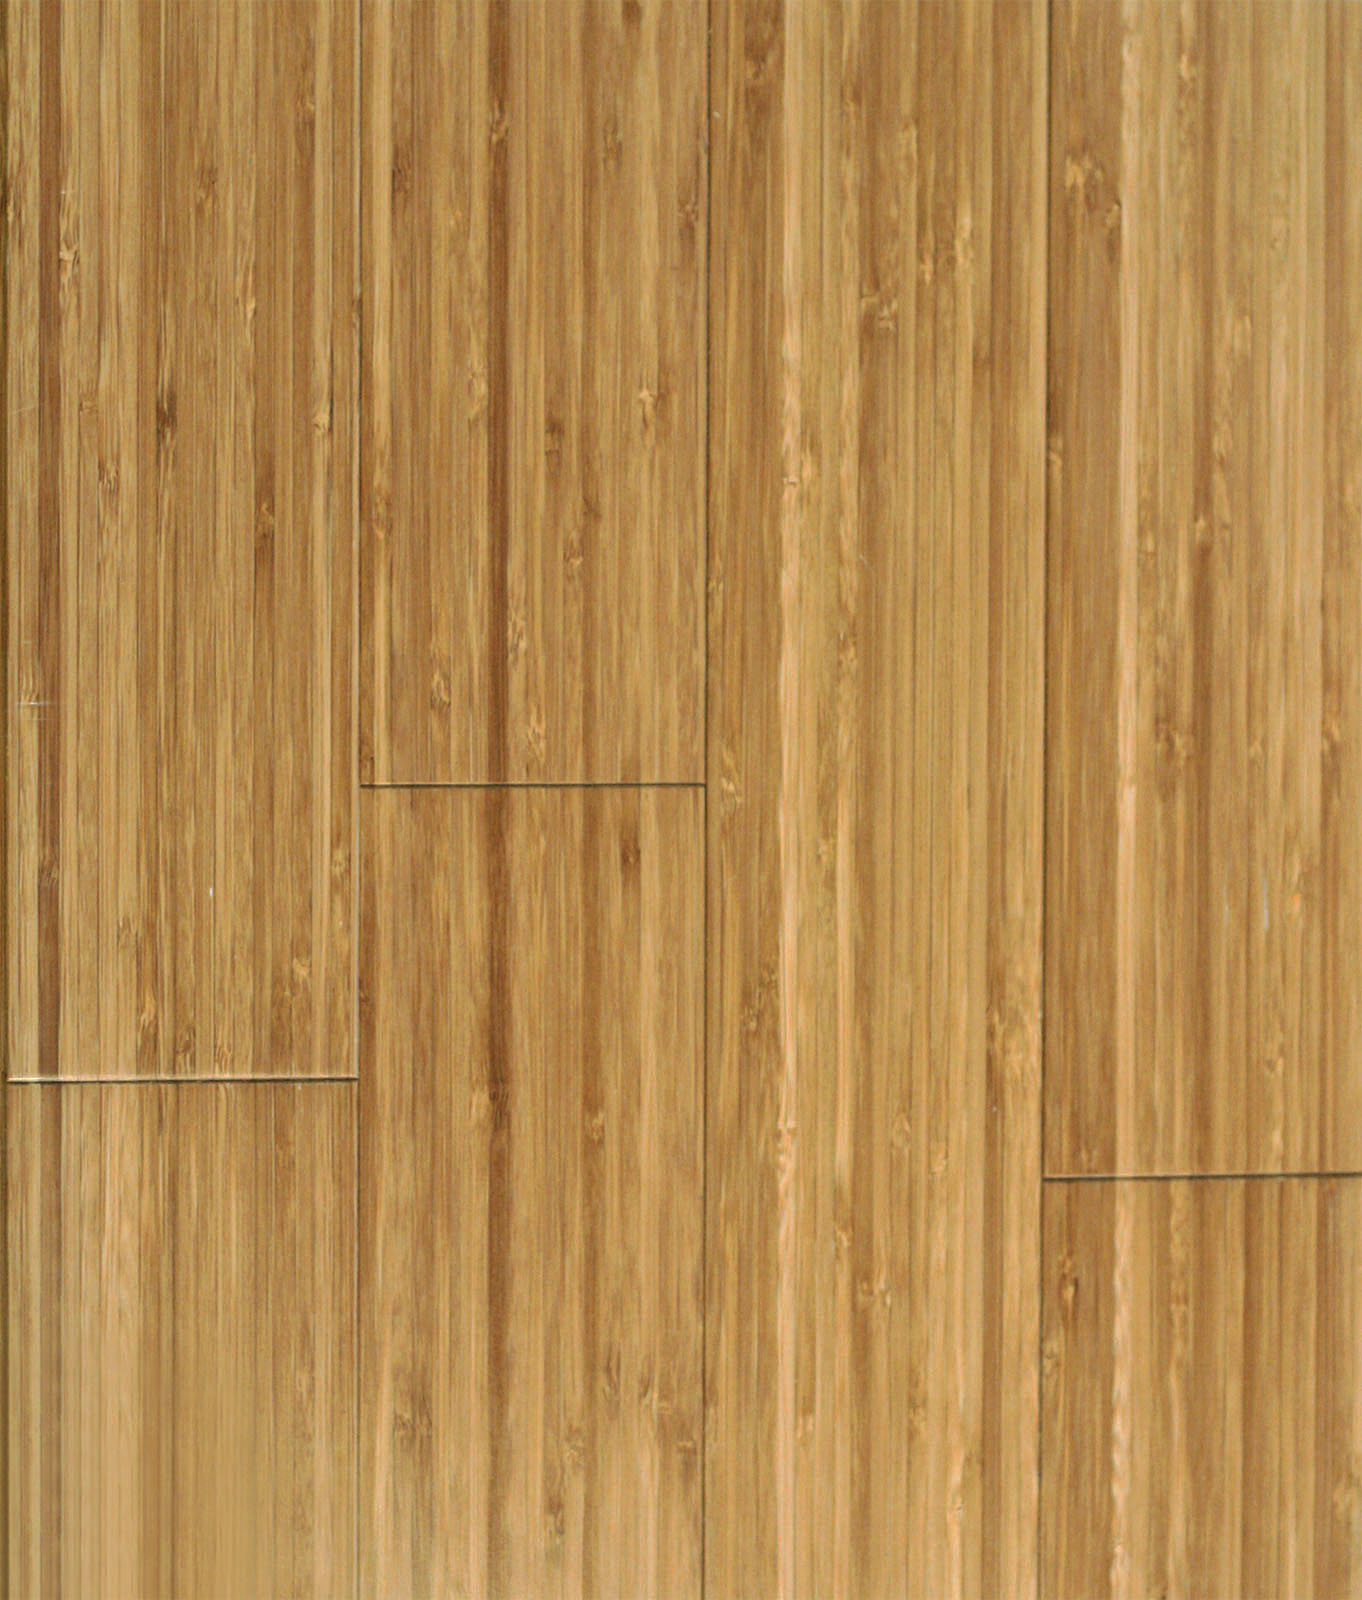 Bamboo grove photo bamboo hardwood floors for Hardwood wood flooring